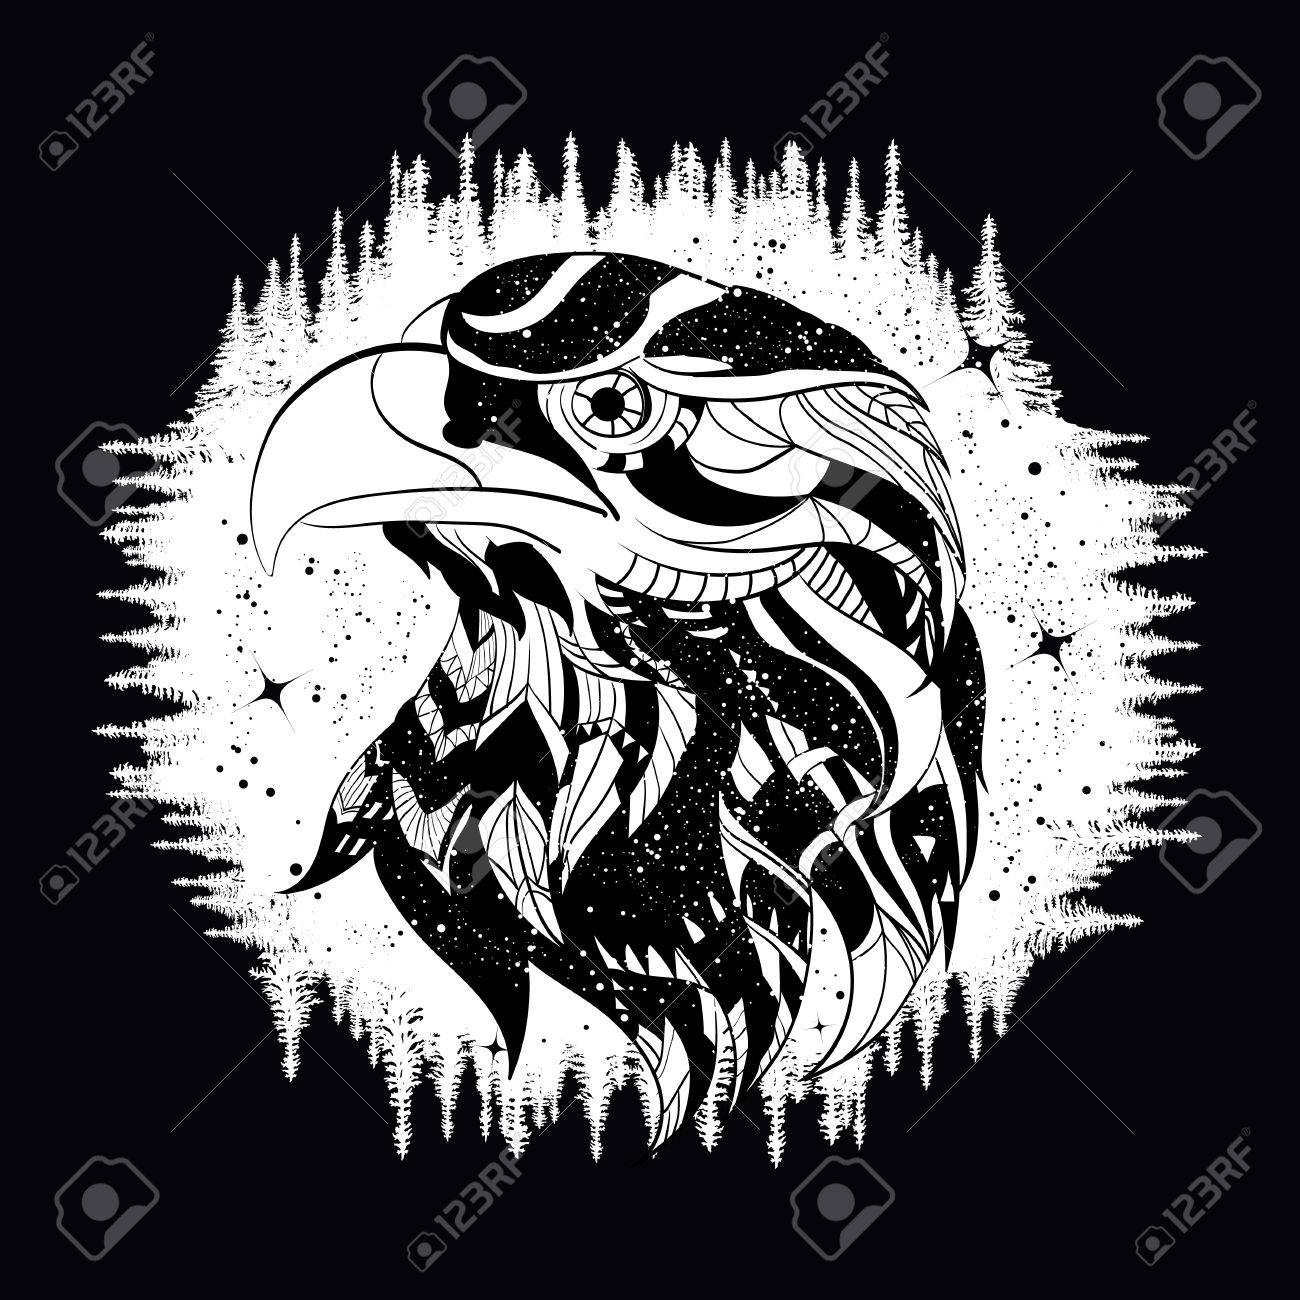 Travelers symbol images for tatouage travelers symbol for eagle tattoo art falcon in night forest symbol travel and biocorpaavc Images